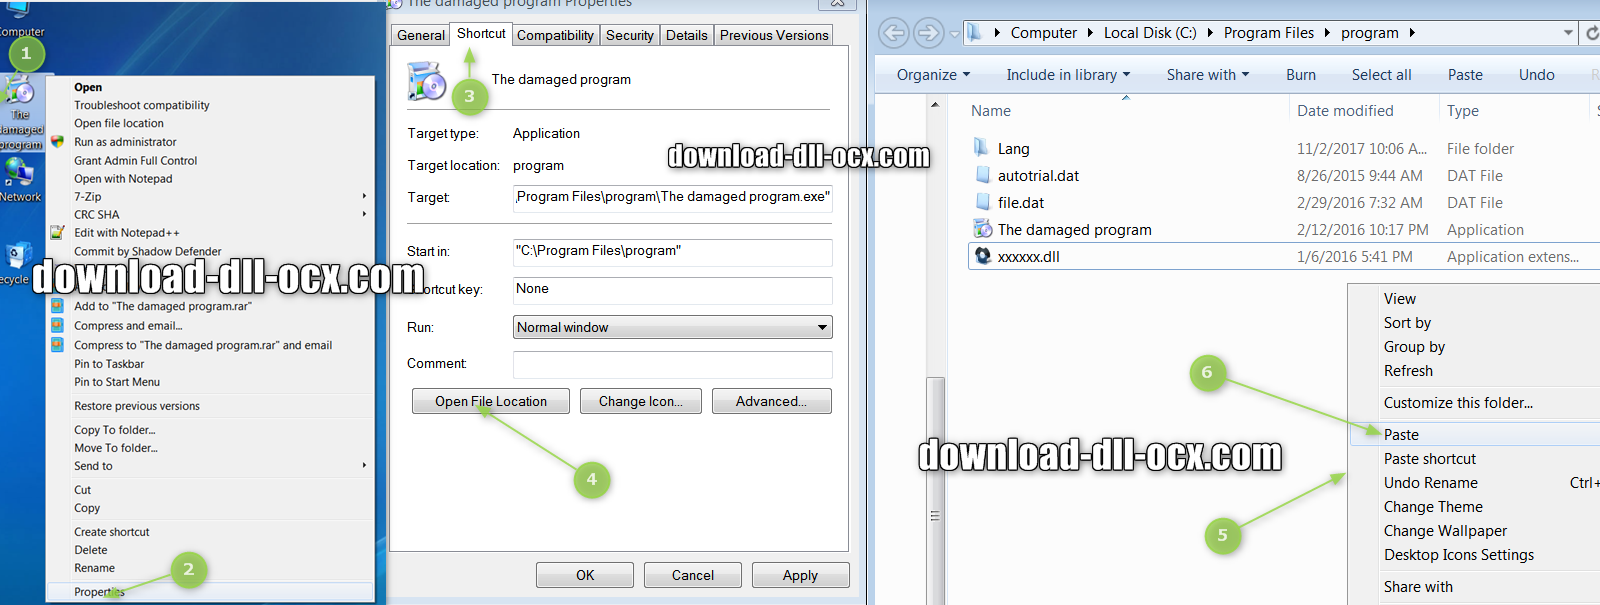 how to install AcsInstallRes.dll file? for fix missing